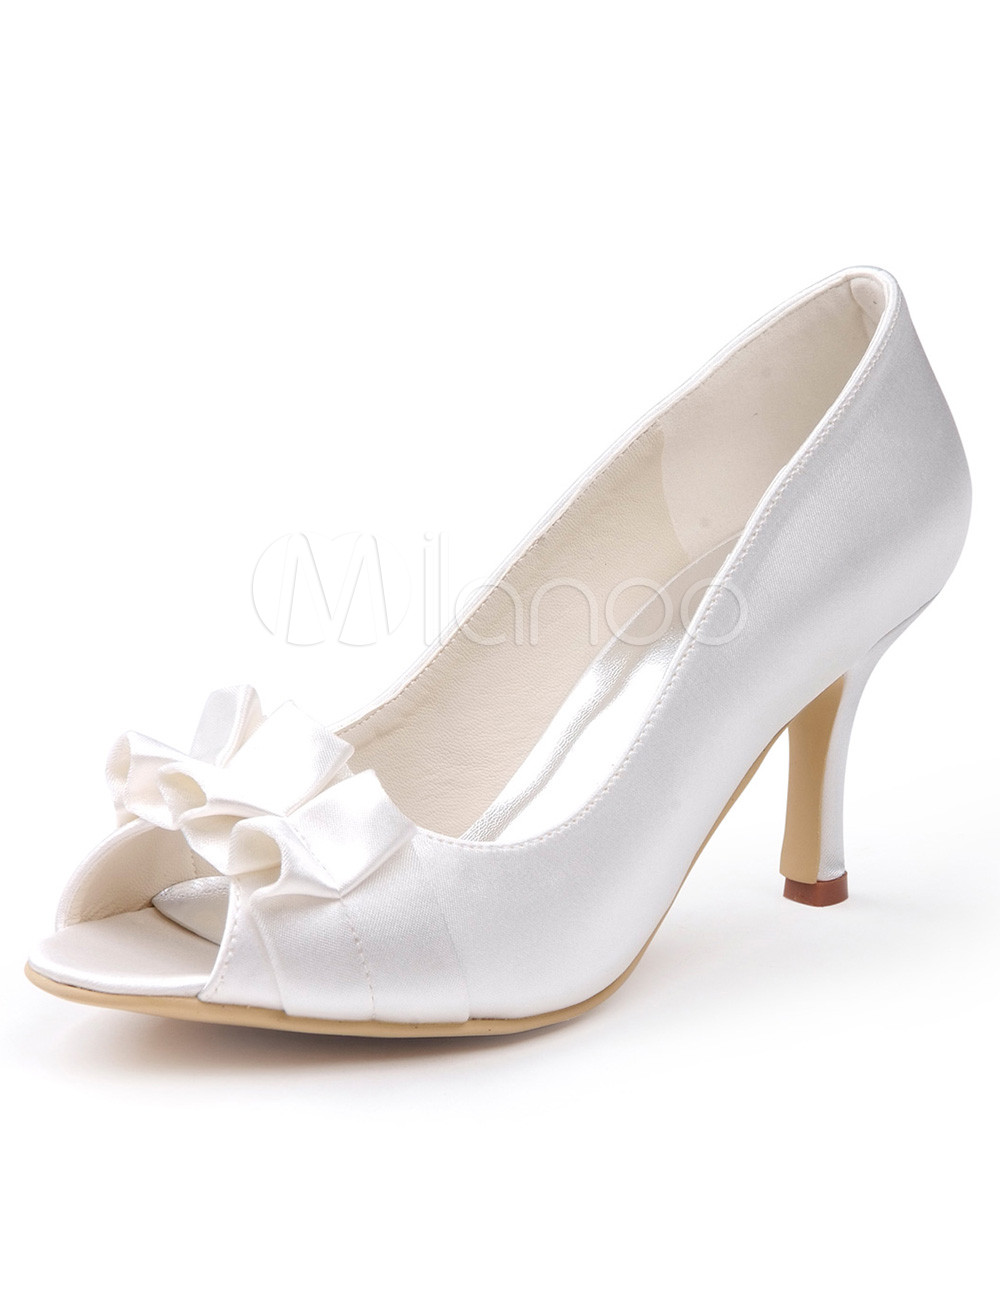 Buy White Crochet Peep Toe Silk And Satin Grace Woman's Evening Shoes for $58.49 in Milanoo store